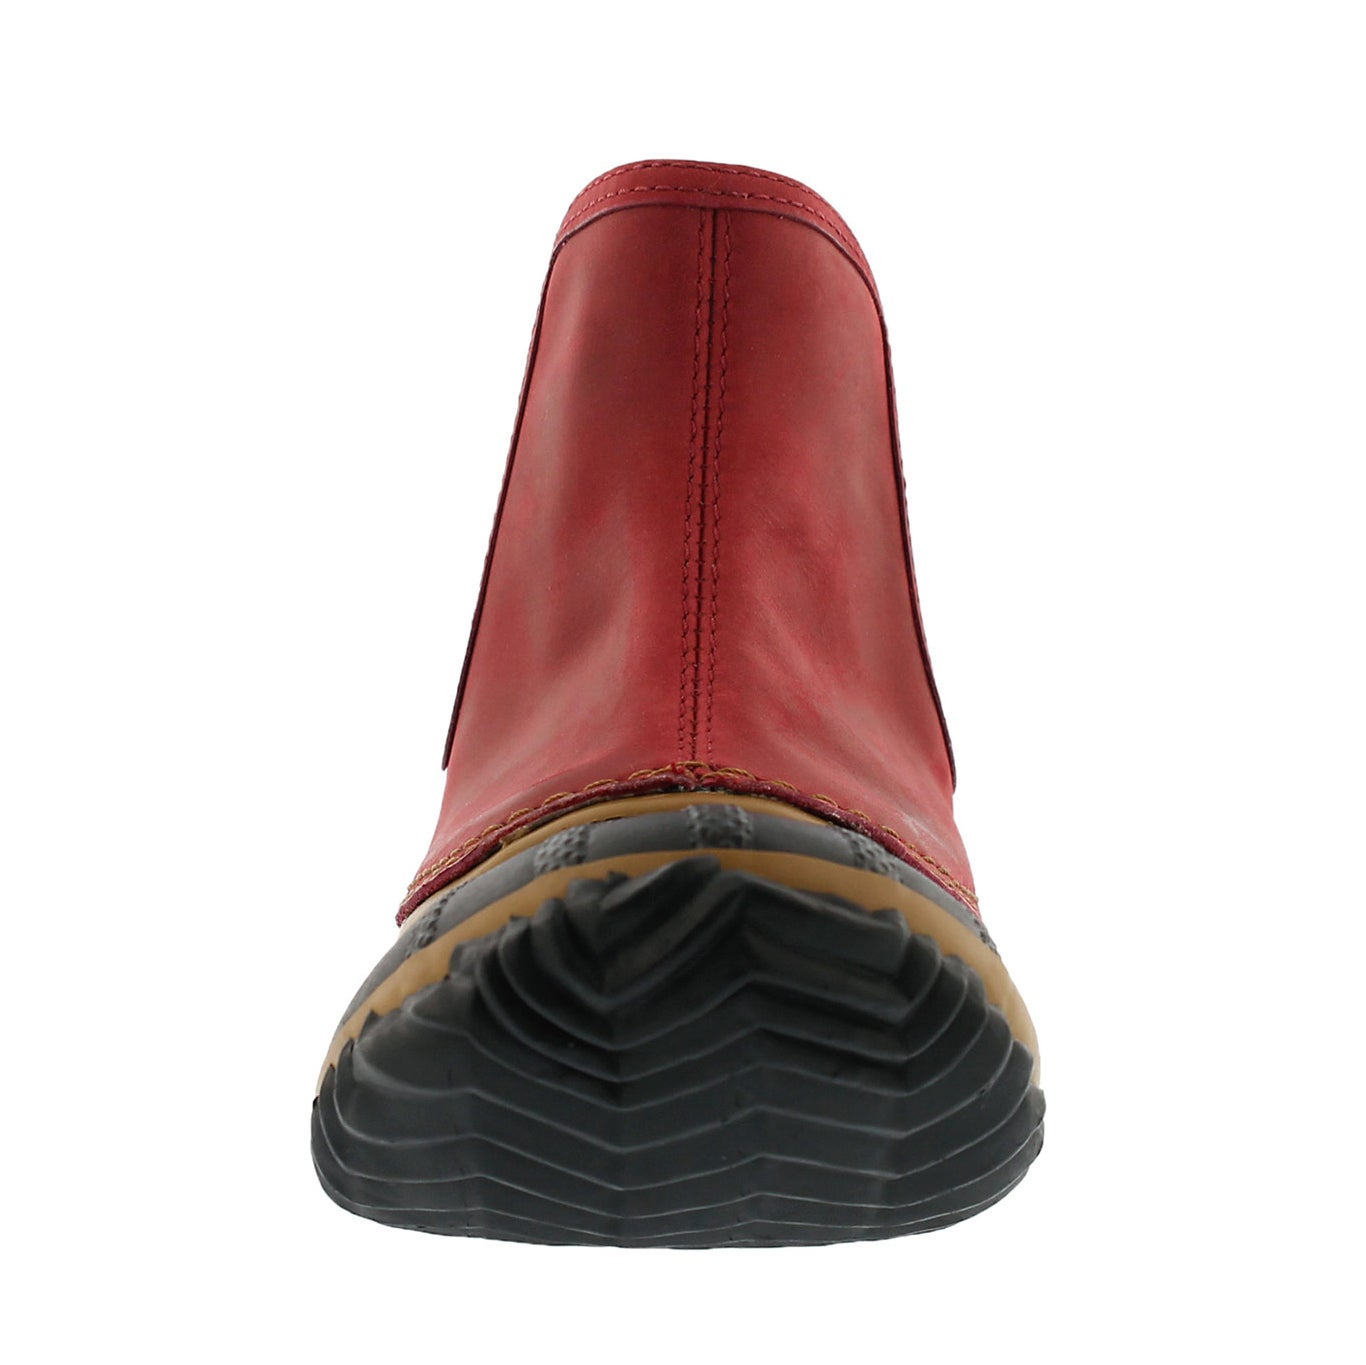 Lds Out'N AboutChelsea gypsy duckie boot